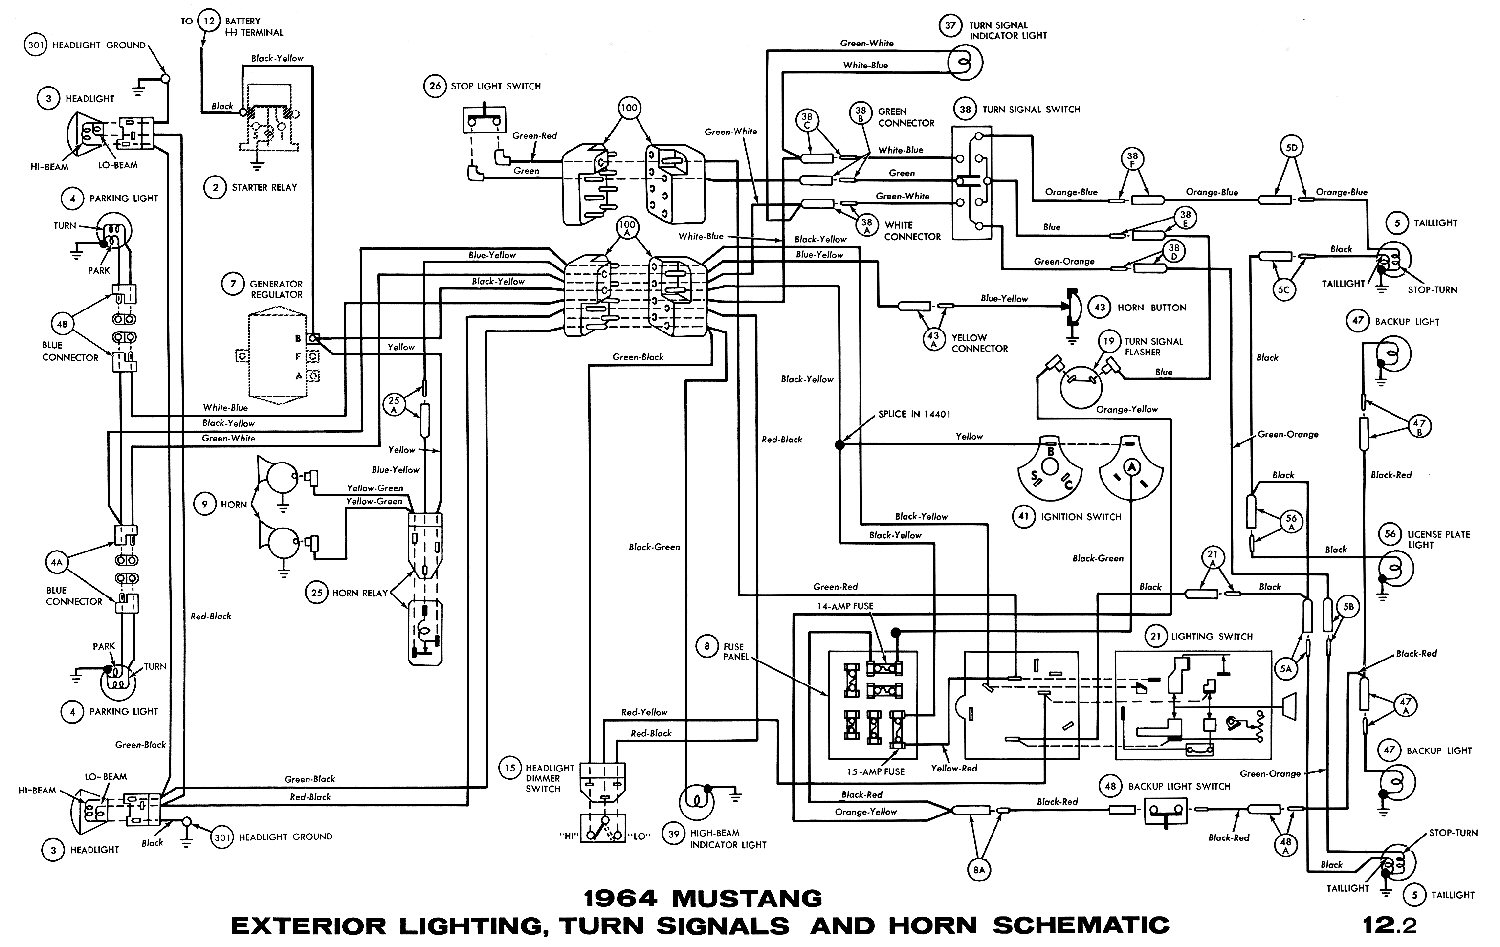 1964i 1964 mustang wiring diagrams average joe restoration 1966 mustang headlight wiring diagram at readyjetset.co